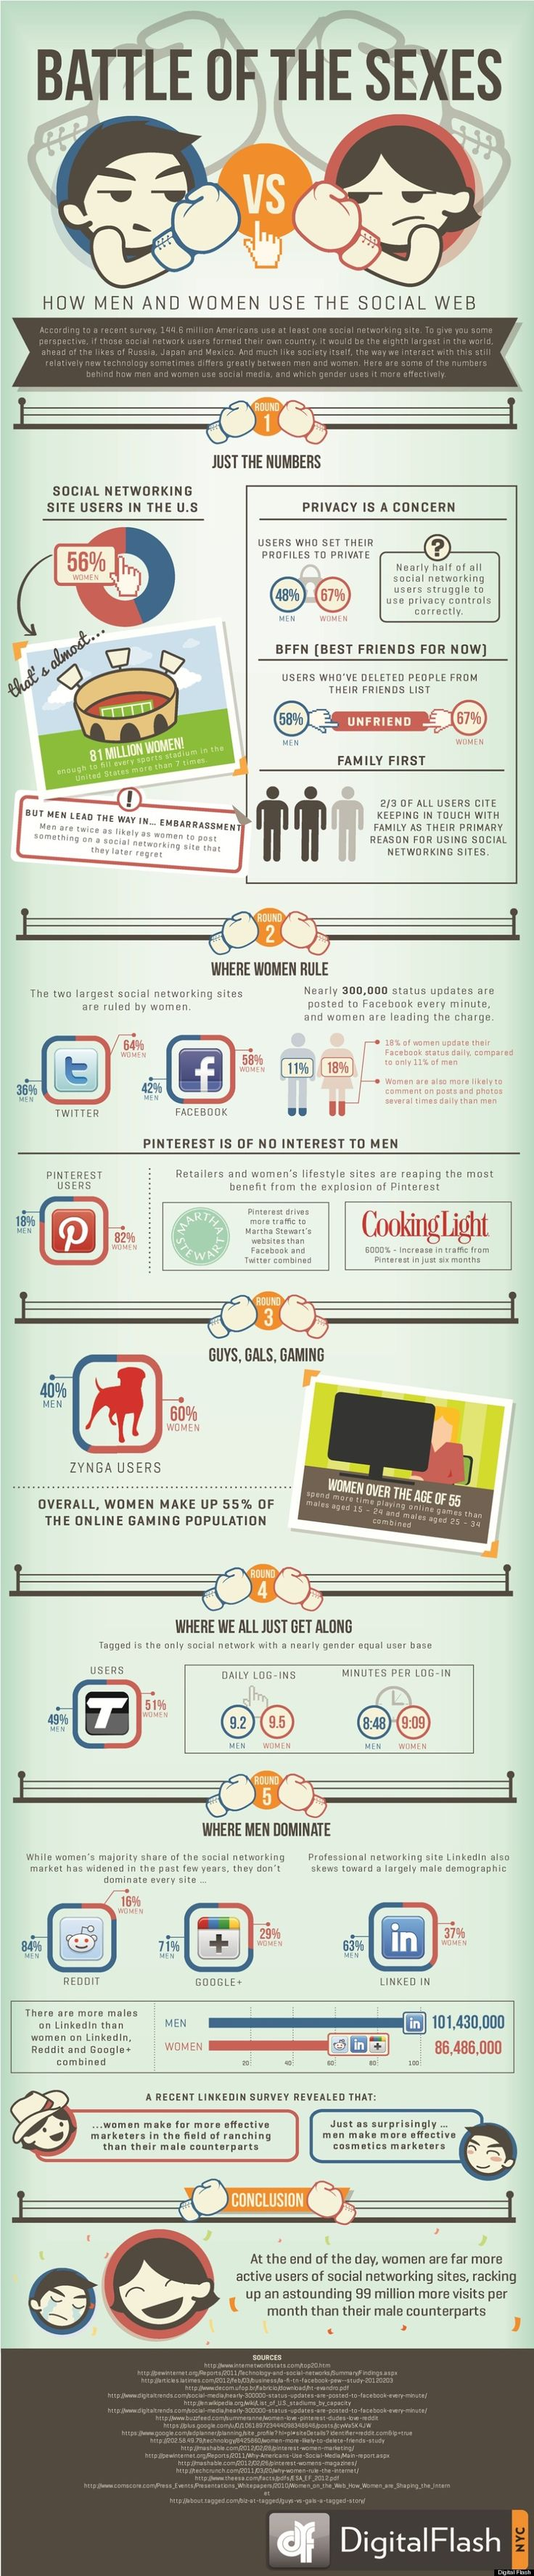 More women on Facebook, Twitter and Pinterest | Infographic by DigitalFlashNYC.